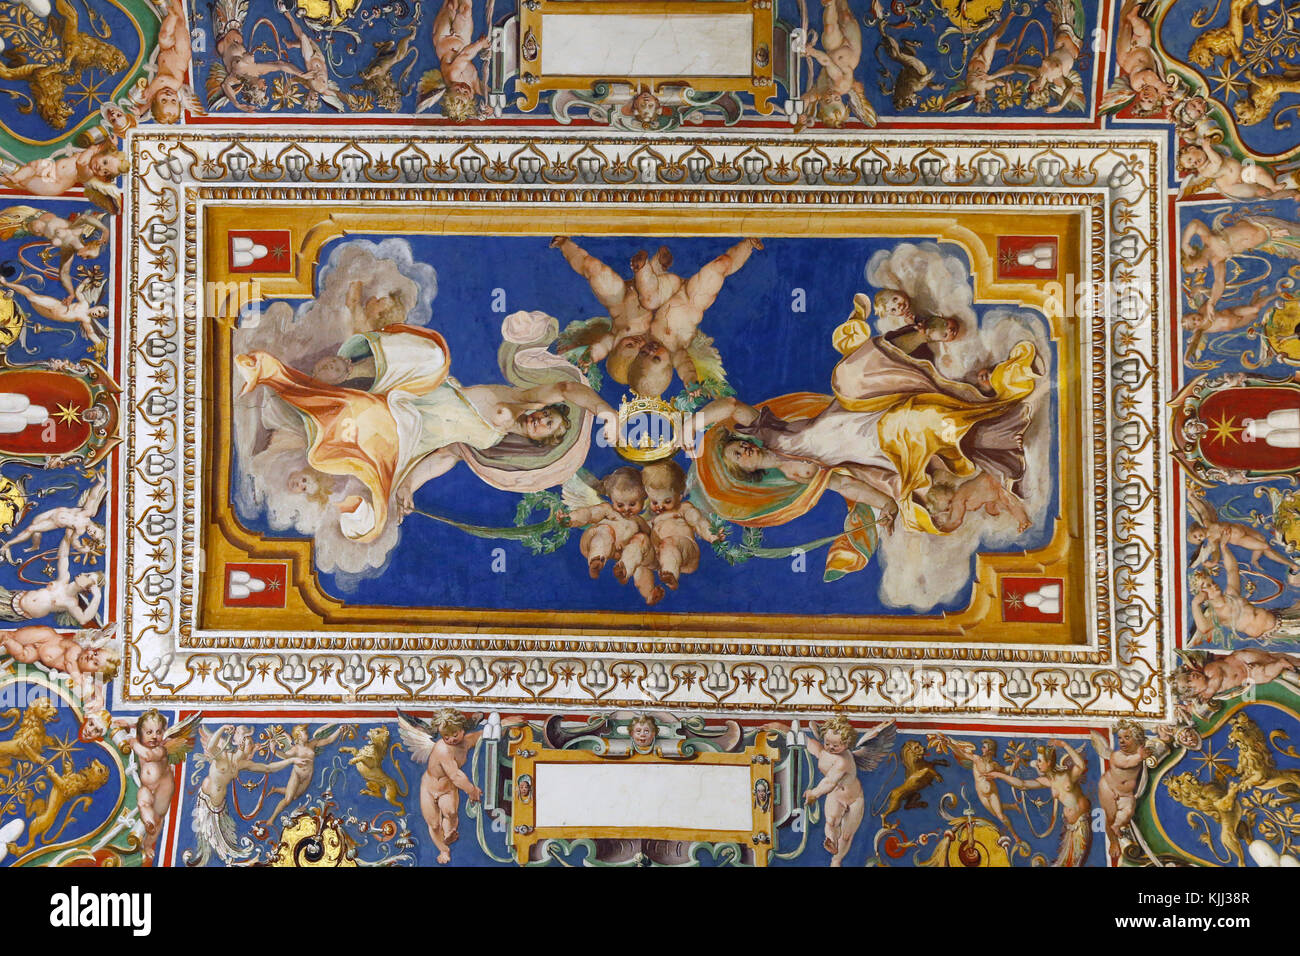 Vatican museums, Rome. Ceiling fresco. Italy. - Stock Image